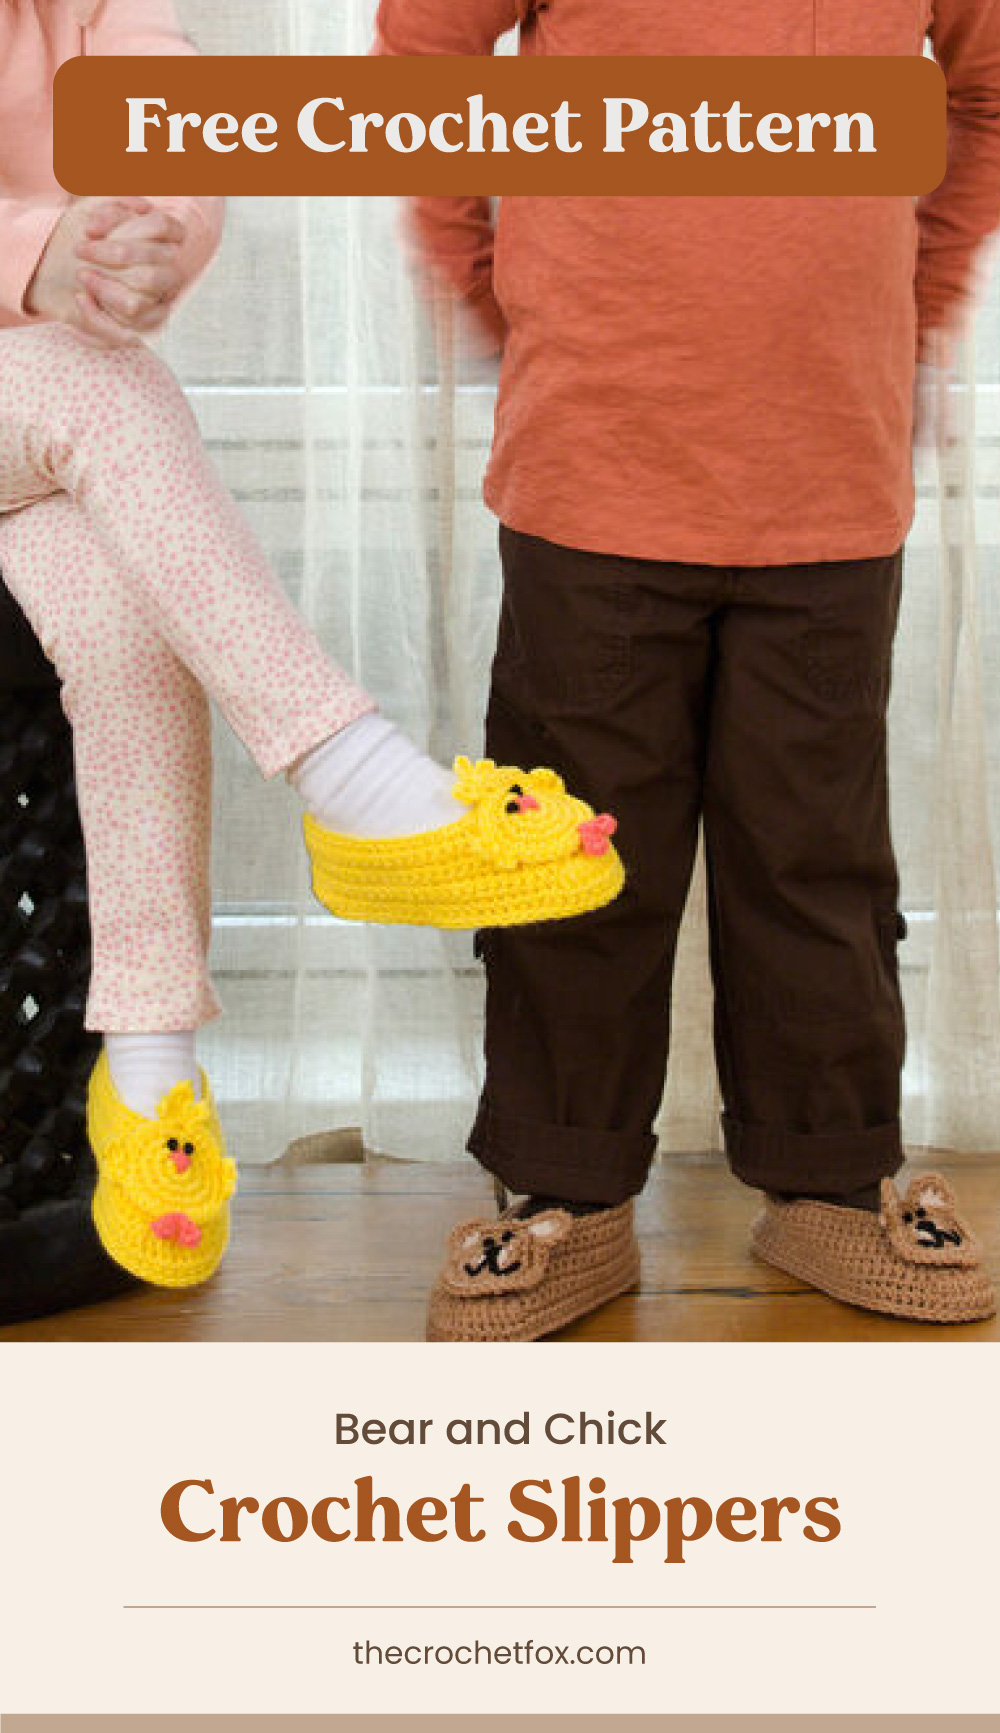 """Text area which says """"Free Crochet Pattern"""" next to close-up of two pairs of bear and chick-inspired crochet slippers worn by little kids followed by another text area which says """"Bear and Chick Crochet Slippers, thecrochetfox.com"""""""